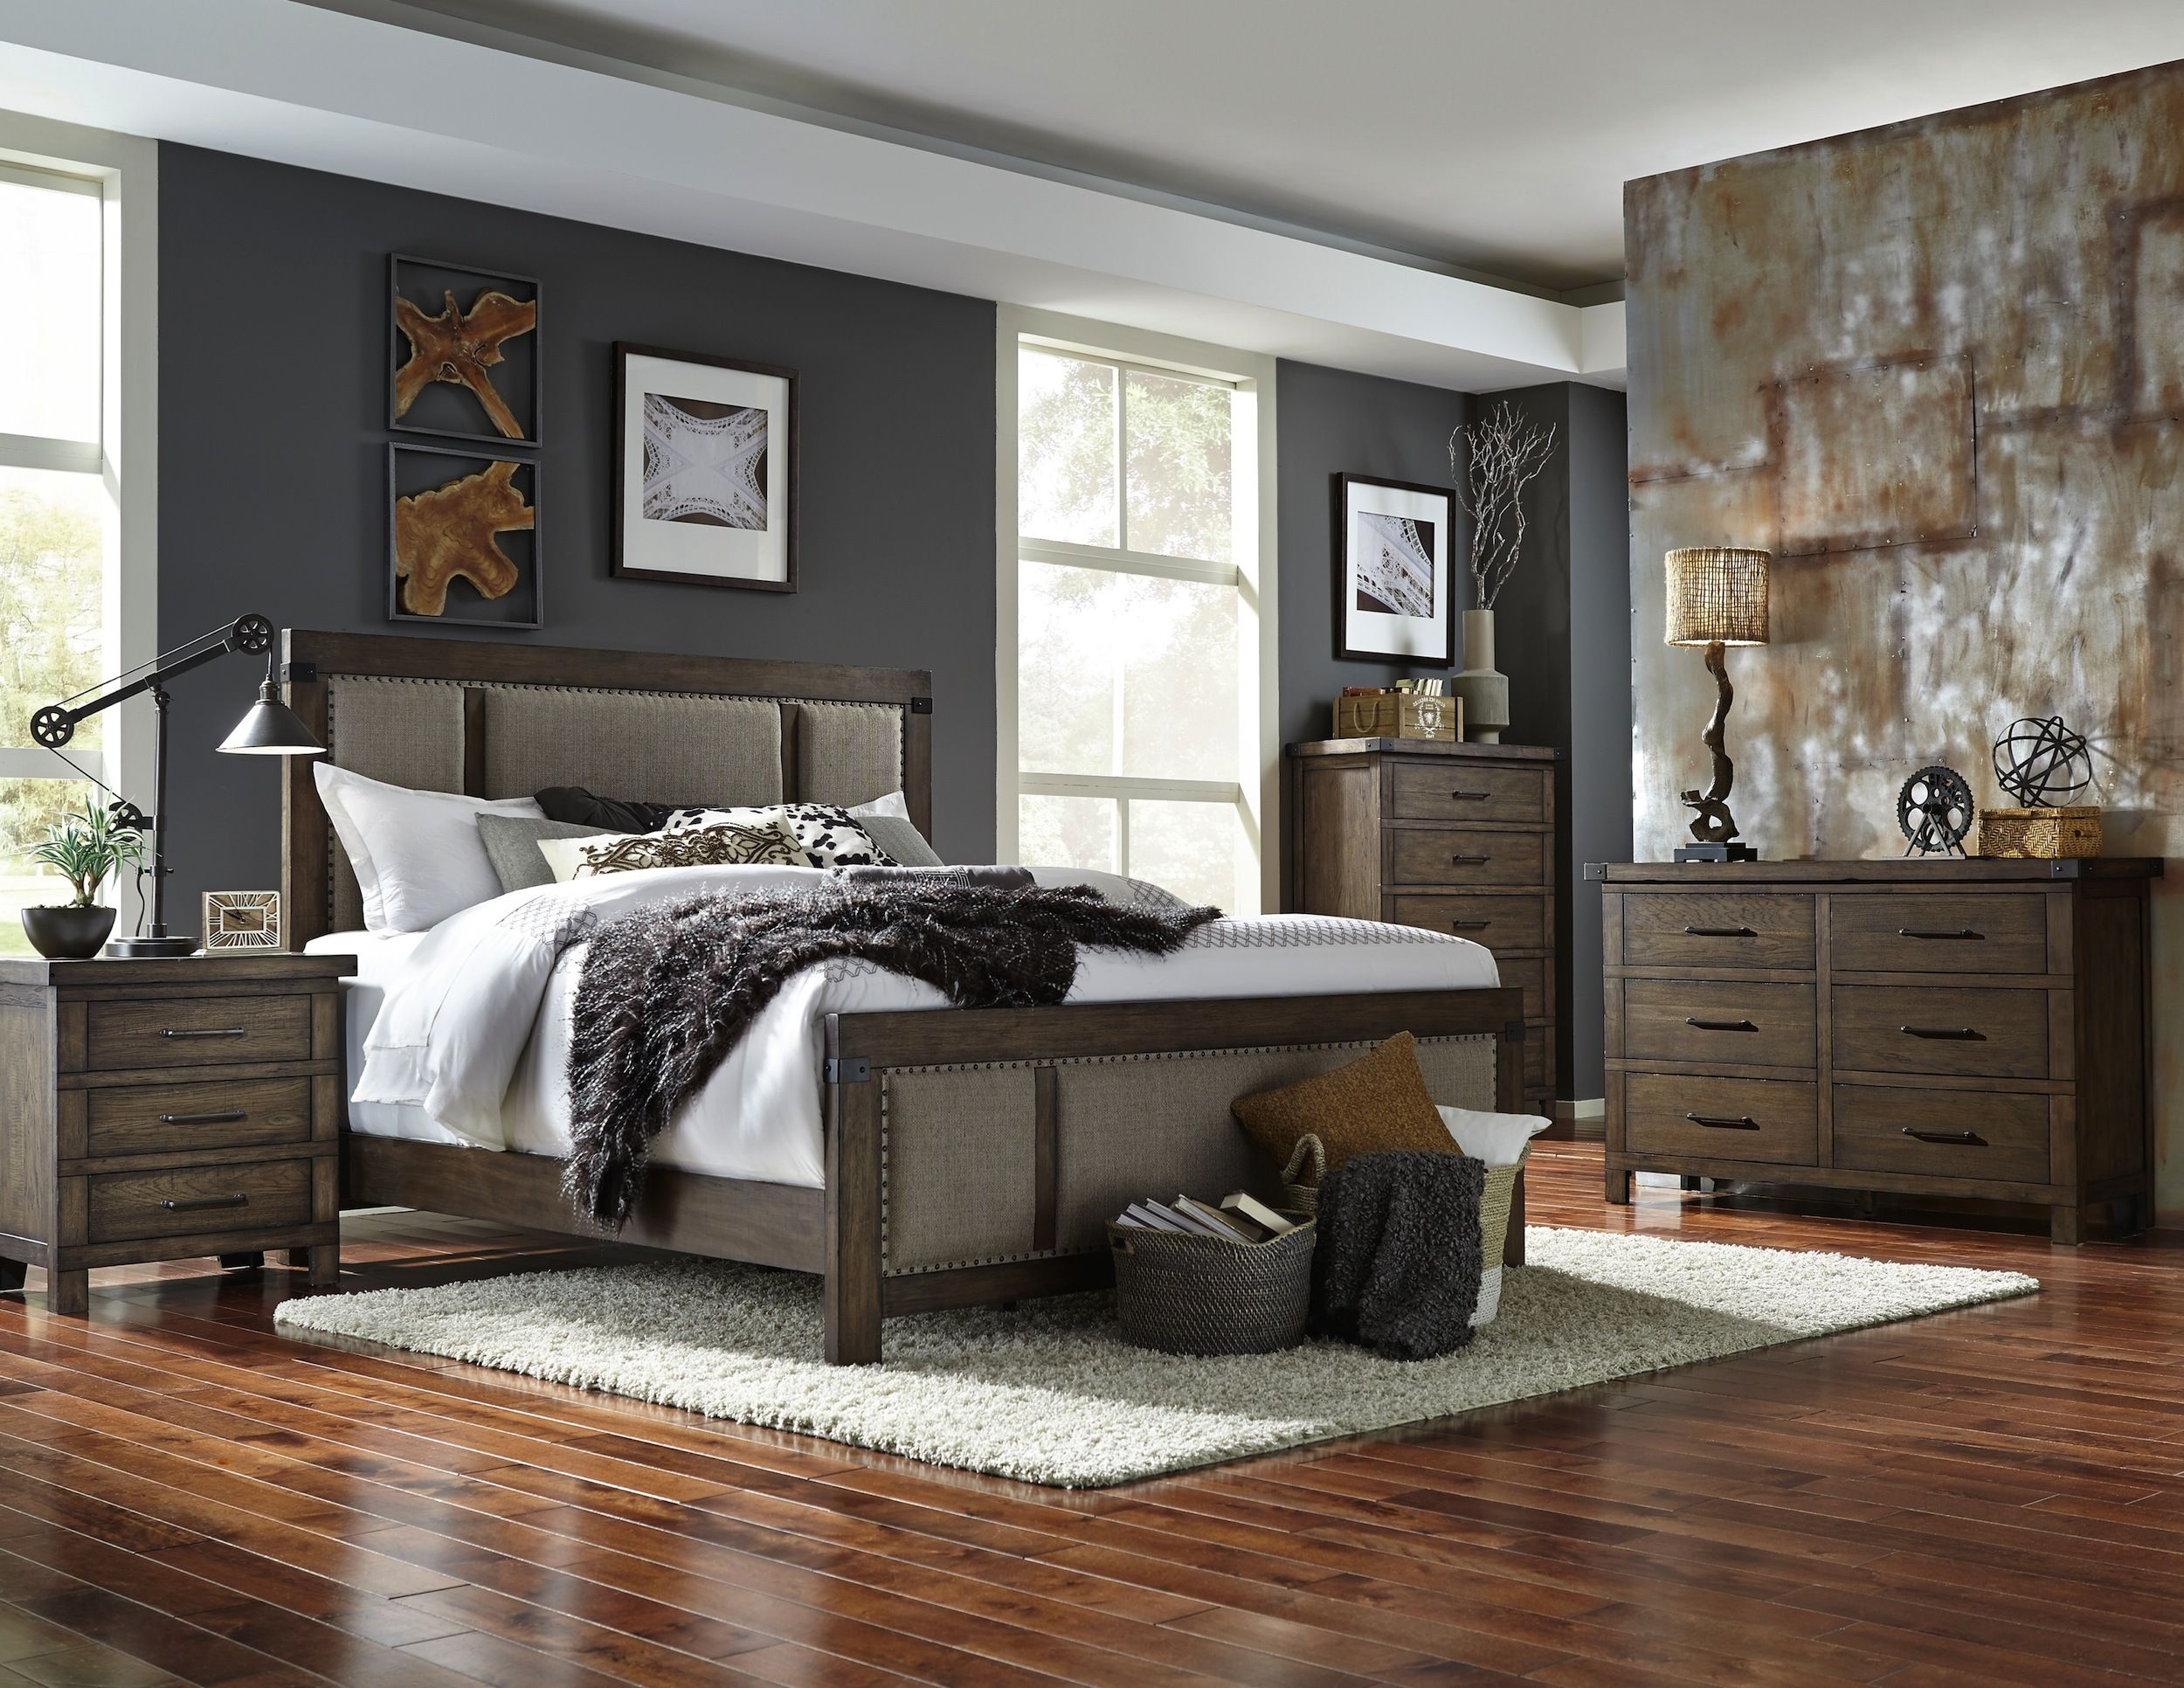 Larimer Square Upholstered Bedroom Set By Broyhill Home Gallery Stores Broyhill Furniture Broyhill Bedroom Furniture Bedroom Furniture For Sale